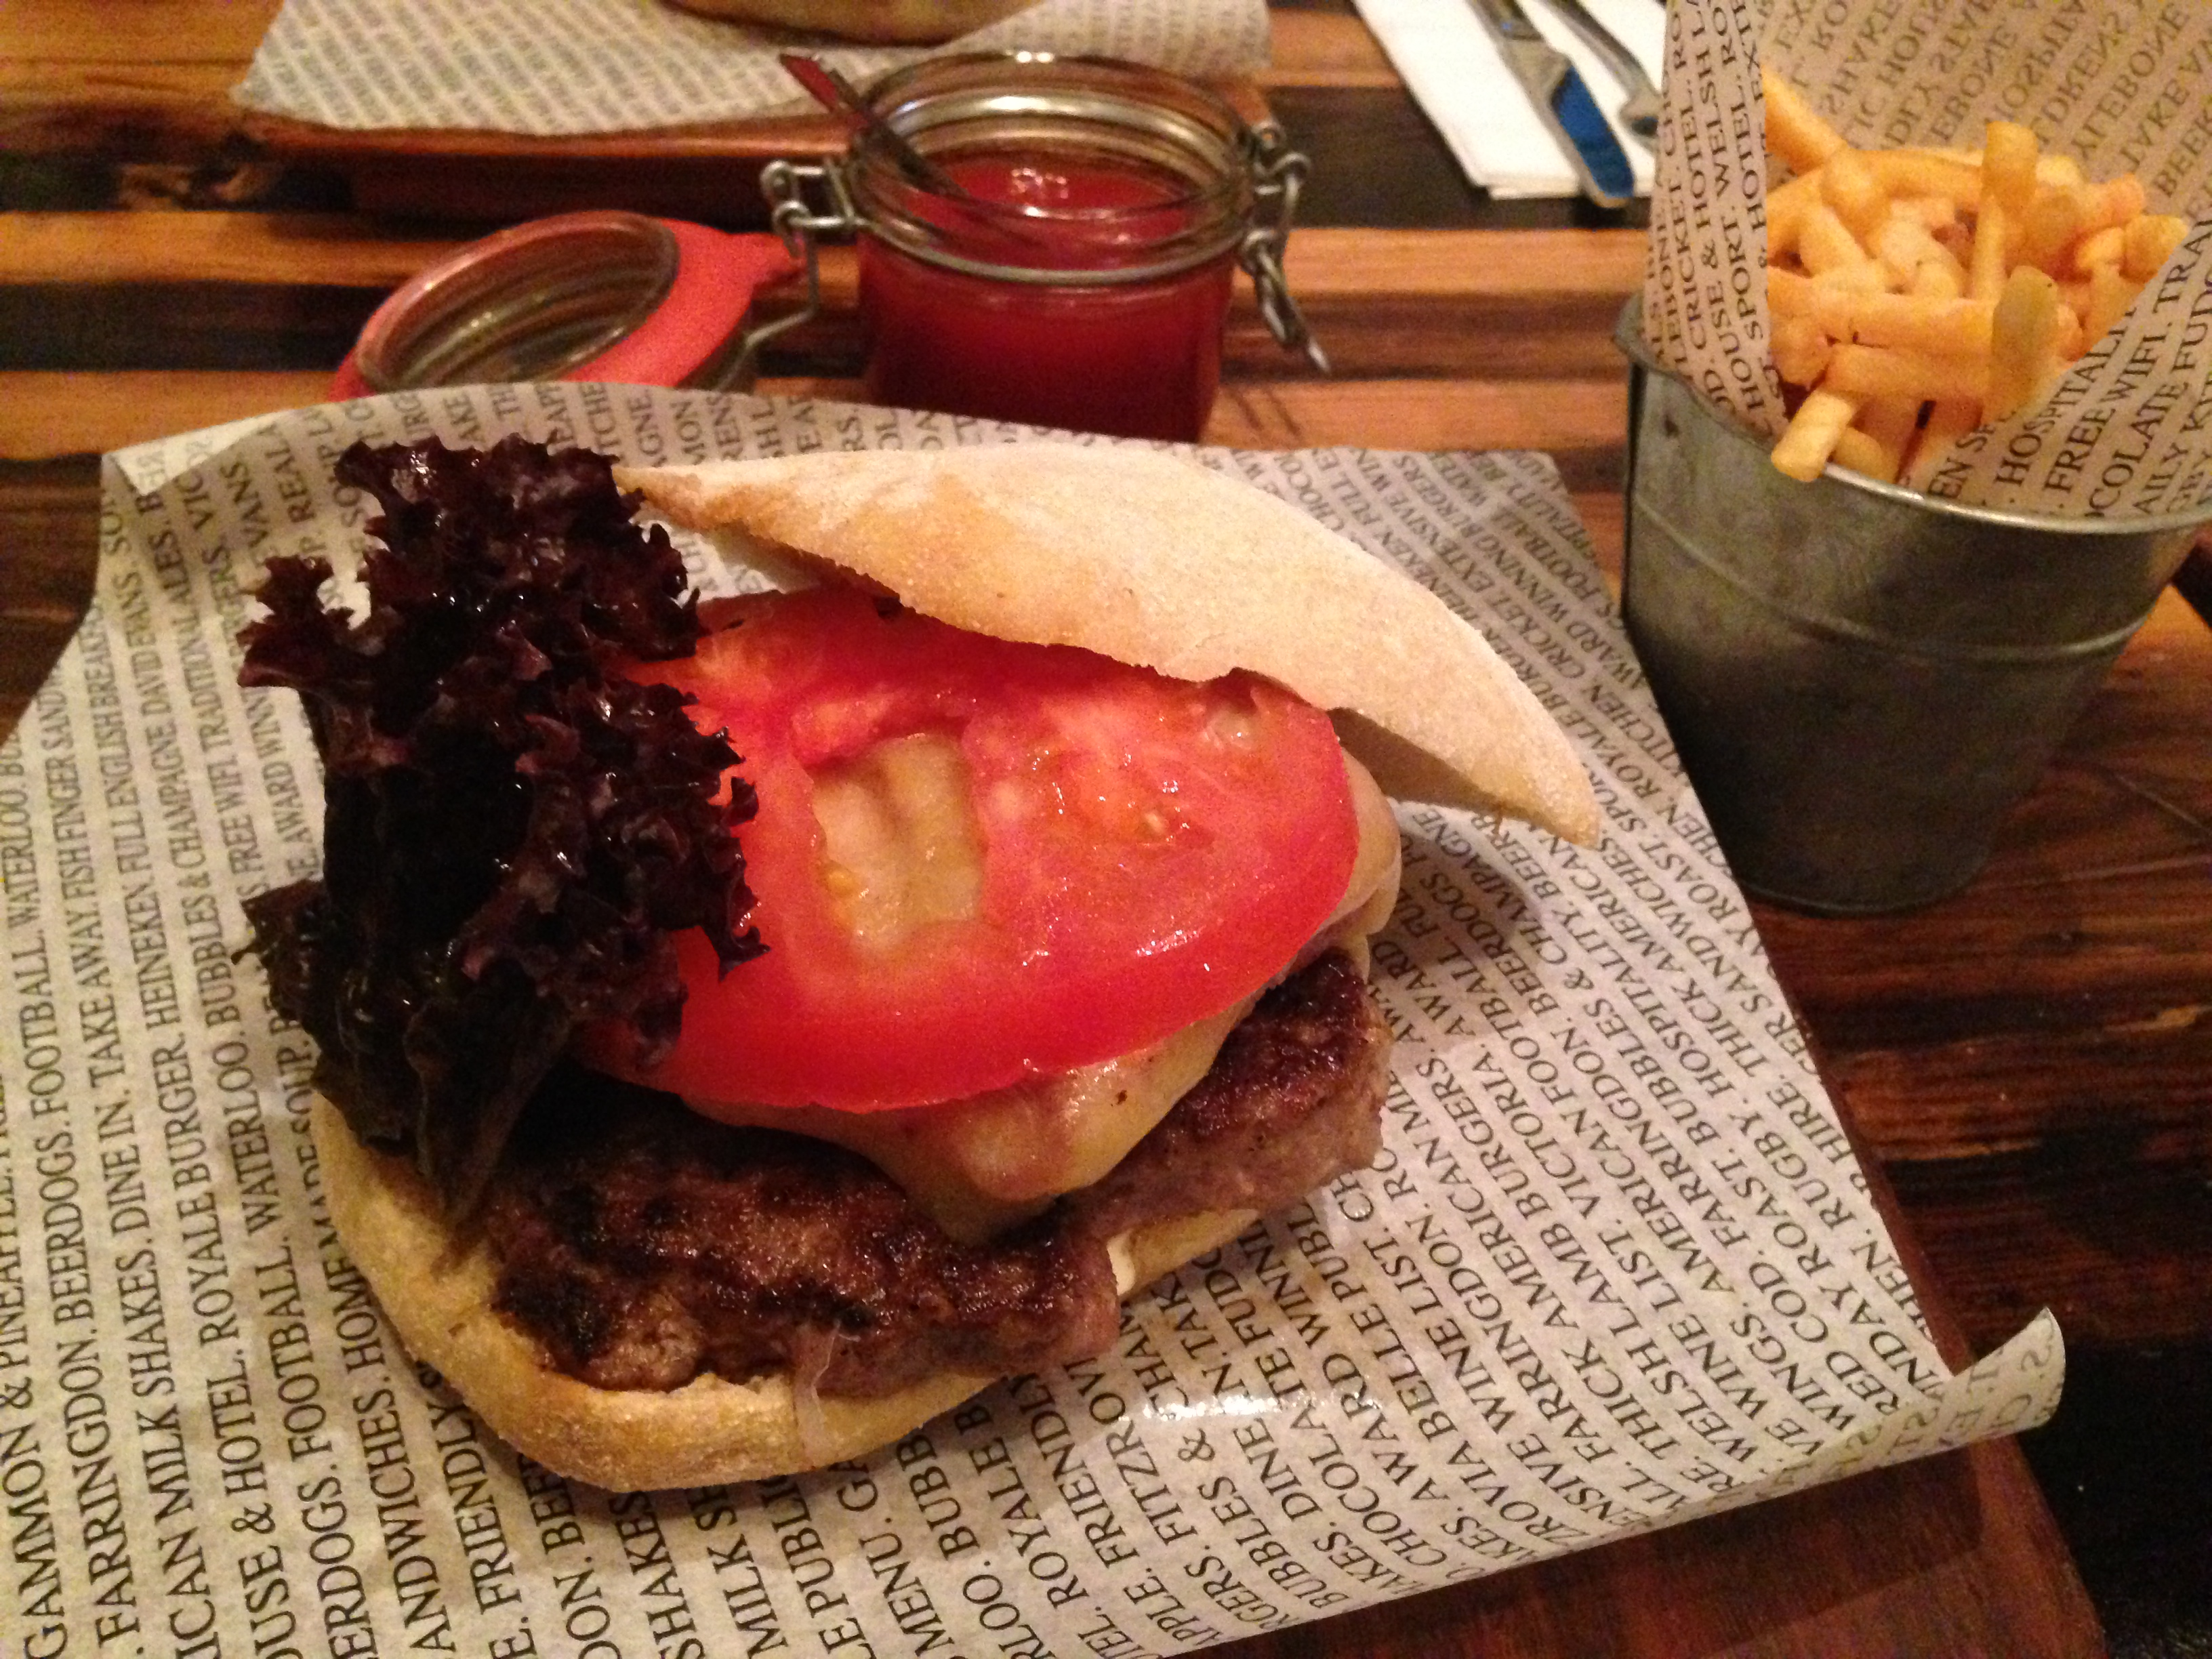 Sedia Bar Sport Sports Bar And Grill Marylebone London The Burger King S